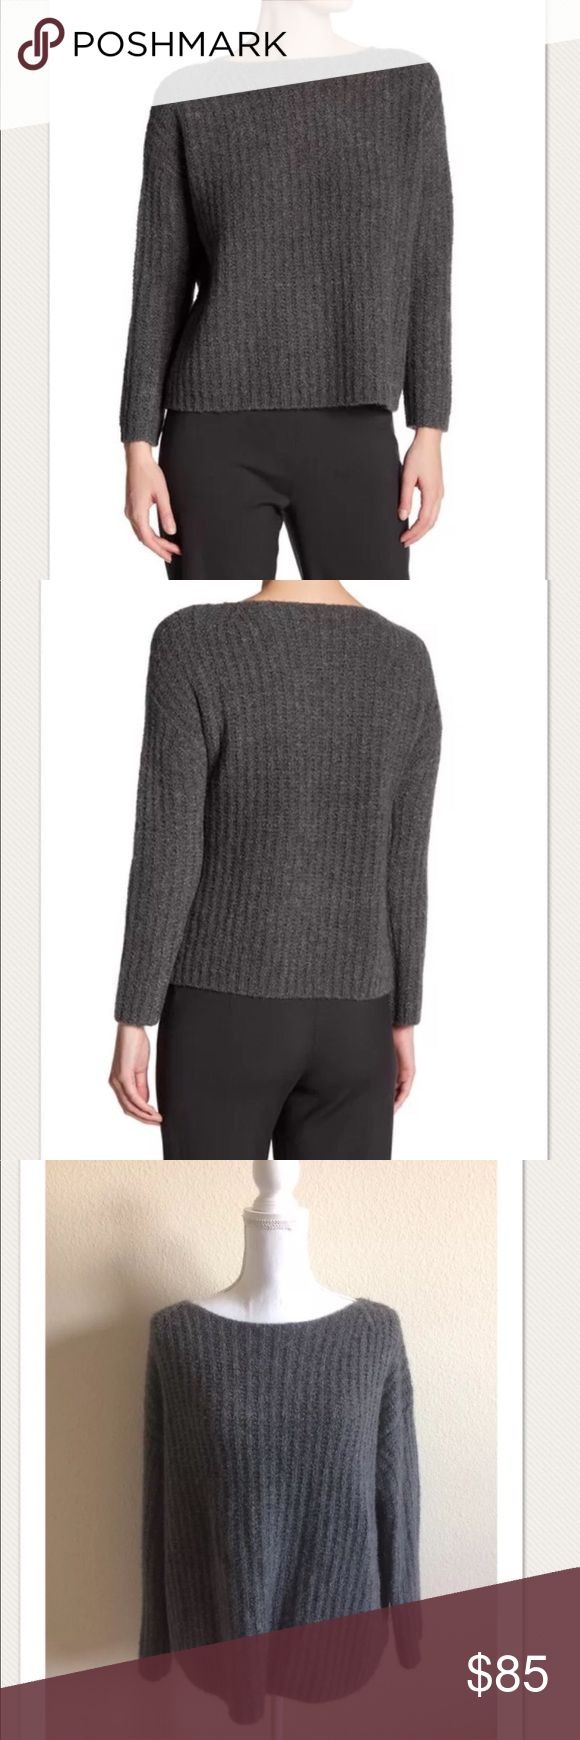 """$445 VINCE Ladder Stitch Funnel Sweater in Charcoa $445 VINCE Ladder Stitch Funnel Sweater in Charcoal ~Size M~  High end department store return- very nice. Retails for $445 + Tax Model photo to show fit- over sized  From Nordstrom: A cozy oversized pullover textured in a ladder-stitched knit enriched with plenty of lush cashmere  - Wide funnel neck - Long sleeves - 79% cashmere, 21% polyamide   Bust across measures approximately: 26"""", total length 25""""  Some very light piling in some spots…"""